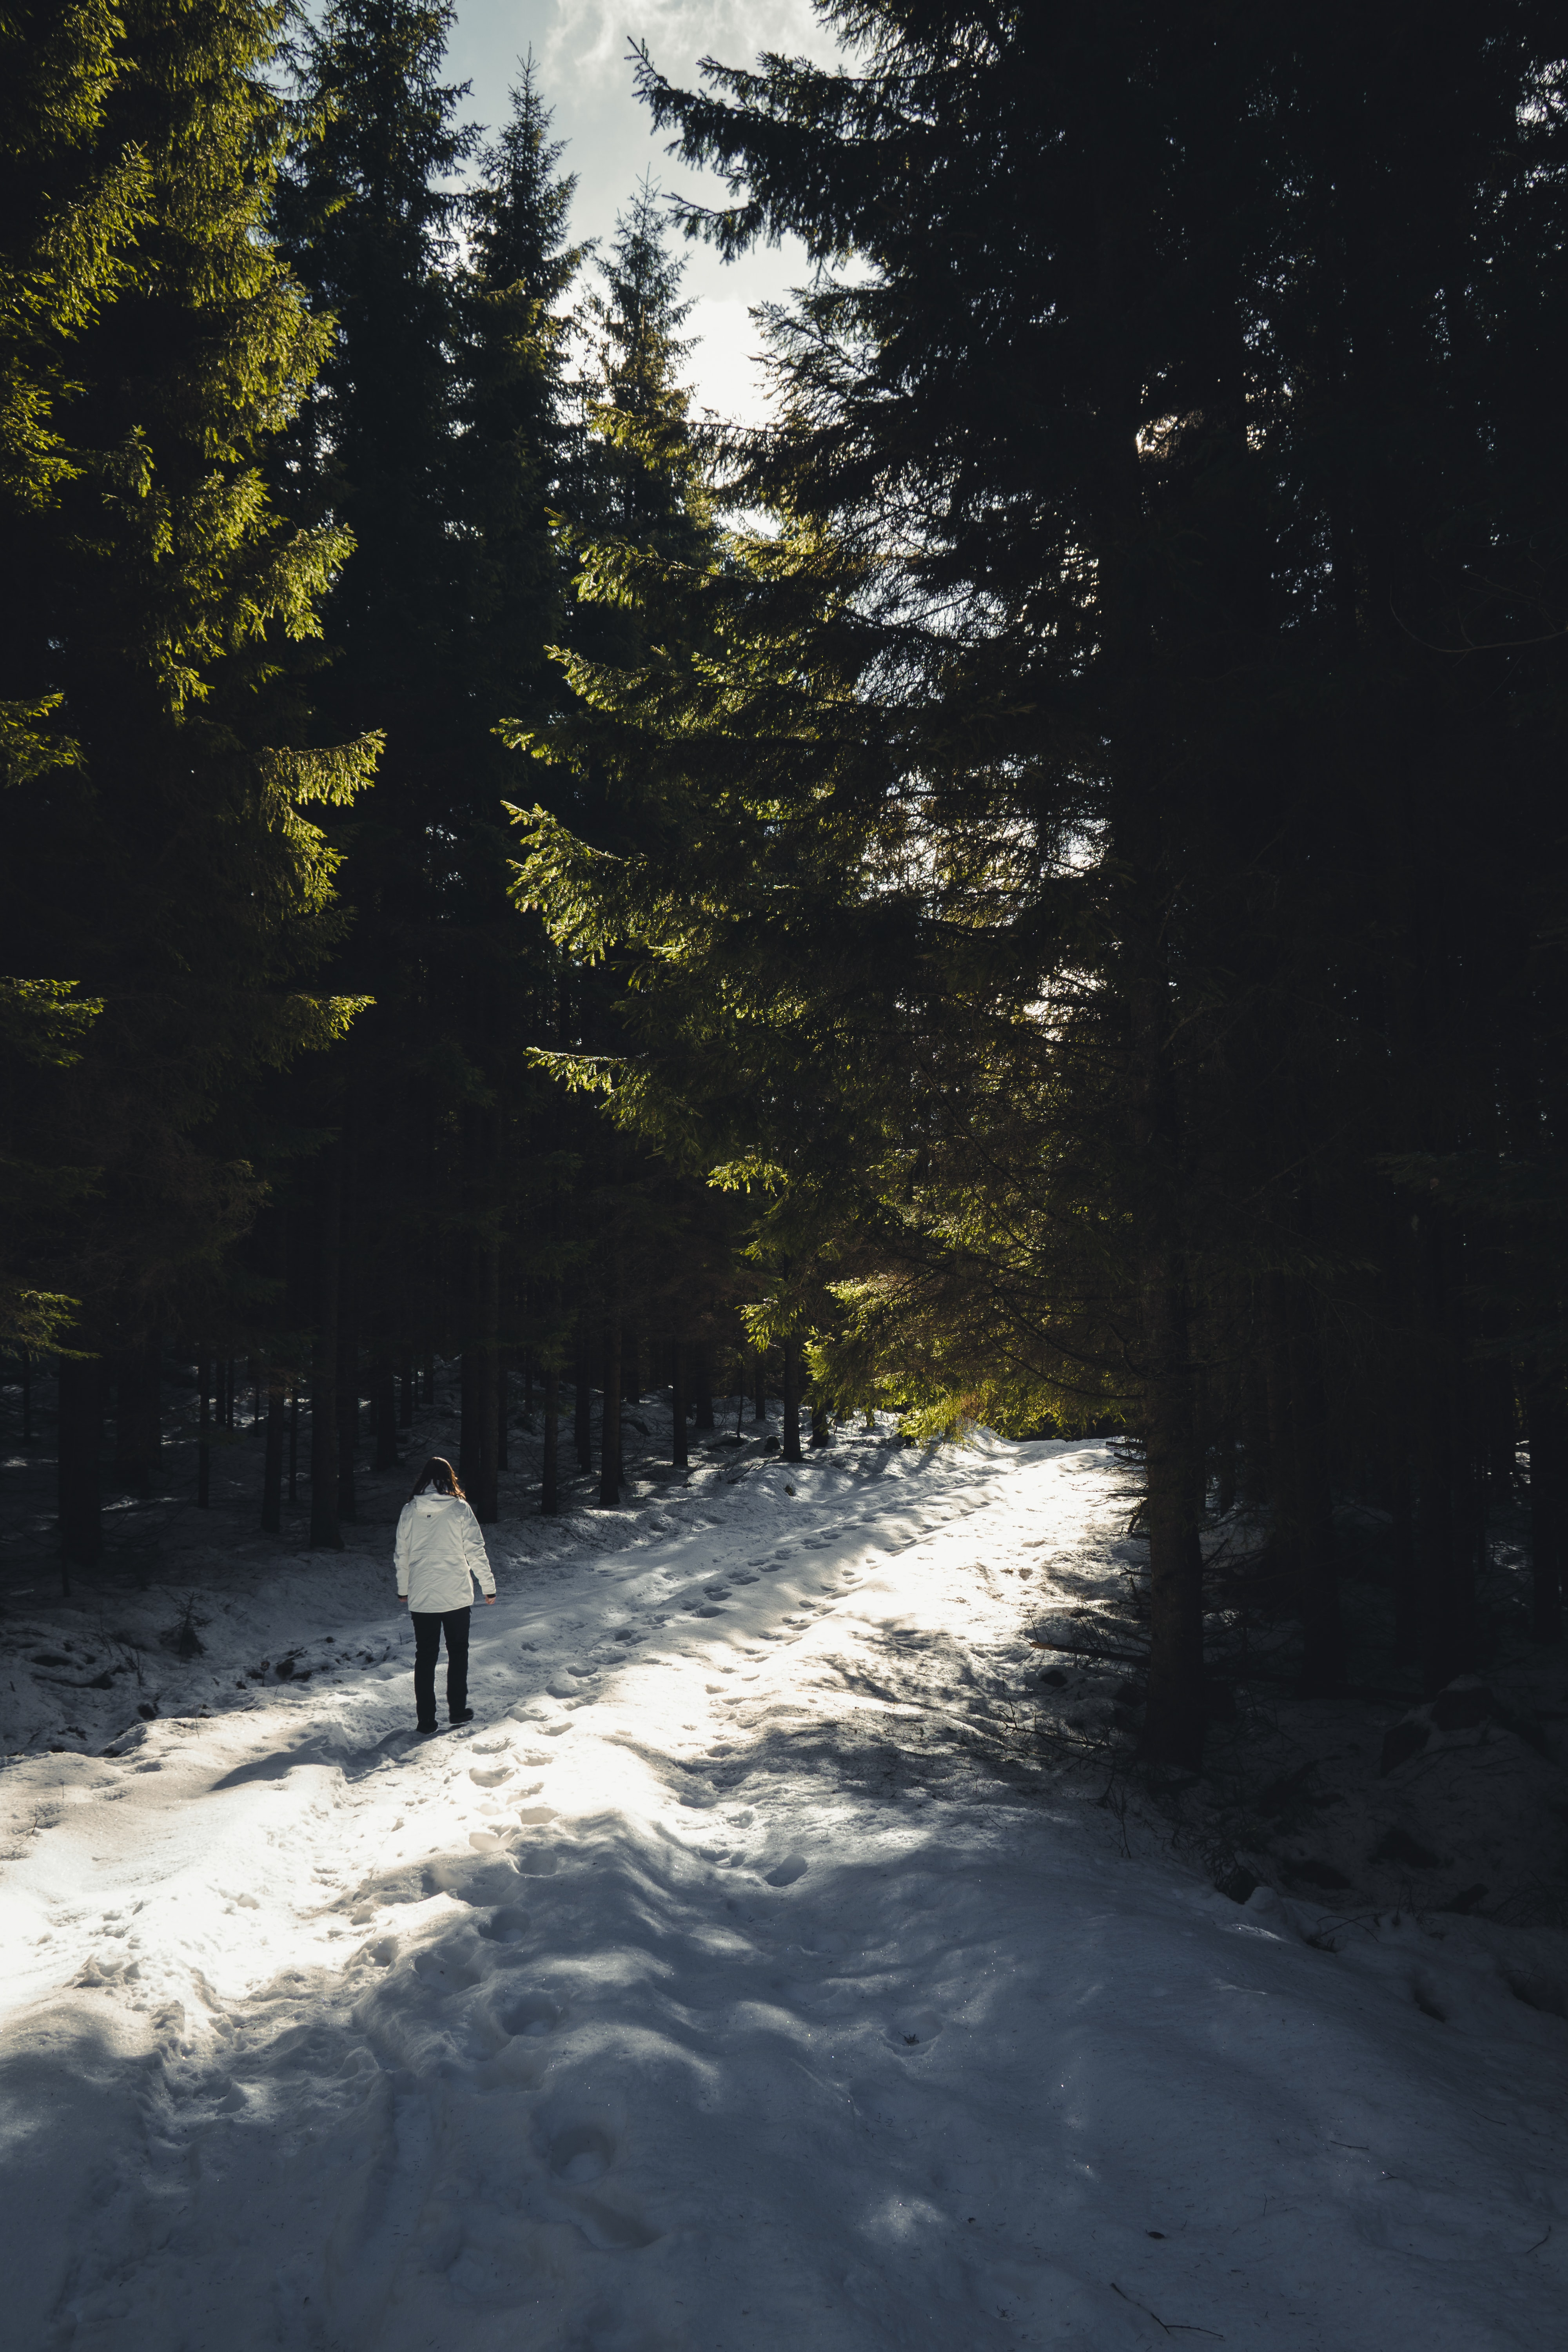 person walking on snow covered ground between green trees